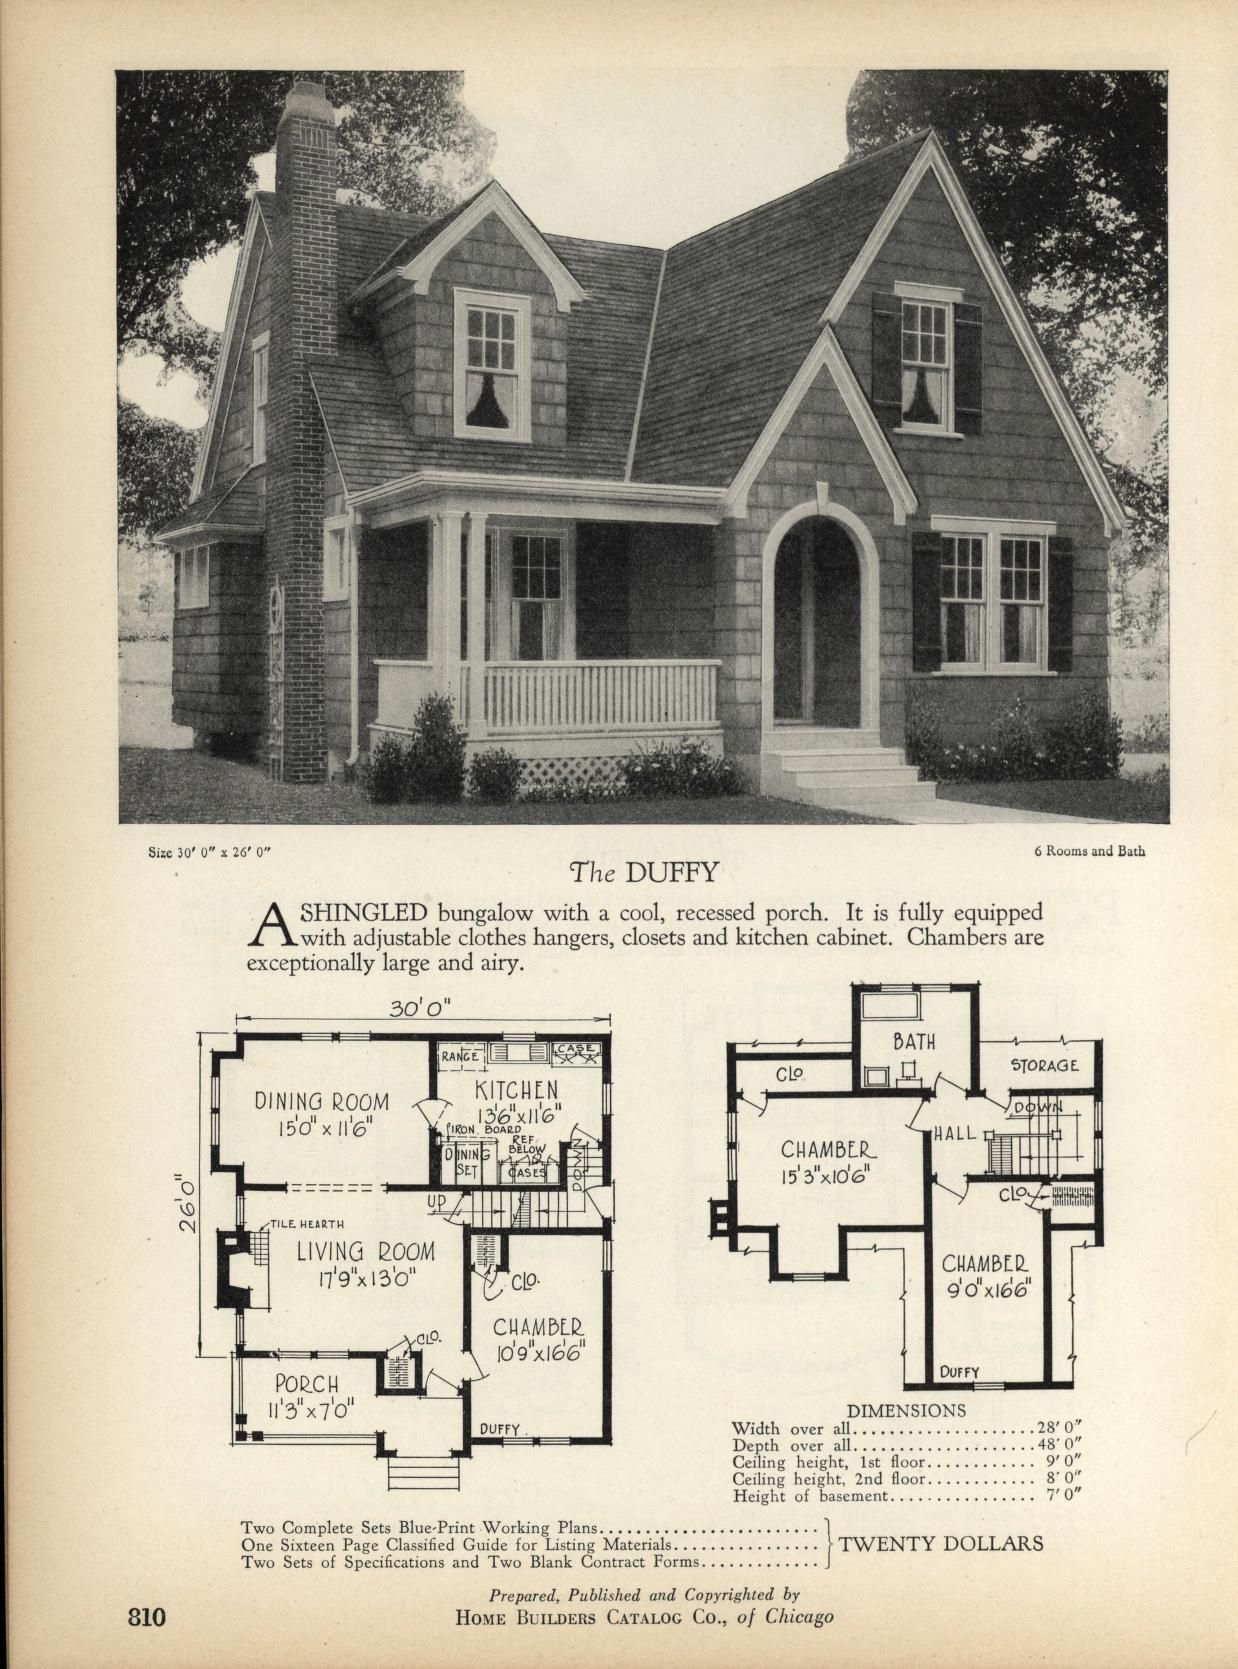 Home Builders Catalog: plans of all types of sm... | 1800's-1940's on 1940's architecture, 1940's art, 1940's interior decorating, 1940's bathrooms, 1940 cape cod house plans, 1940's home decor, 1940's model home, 1940's garage, 1940's furniture, 1900 american foursquare house plans,